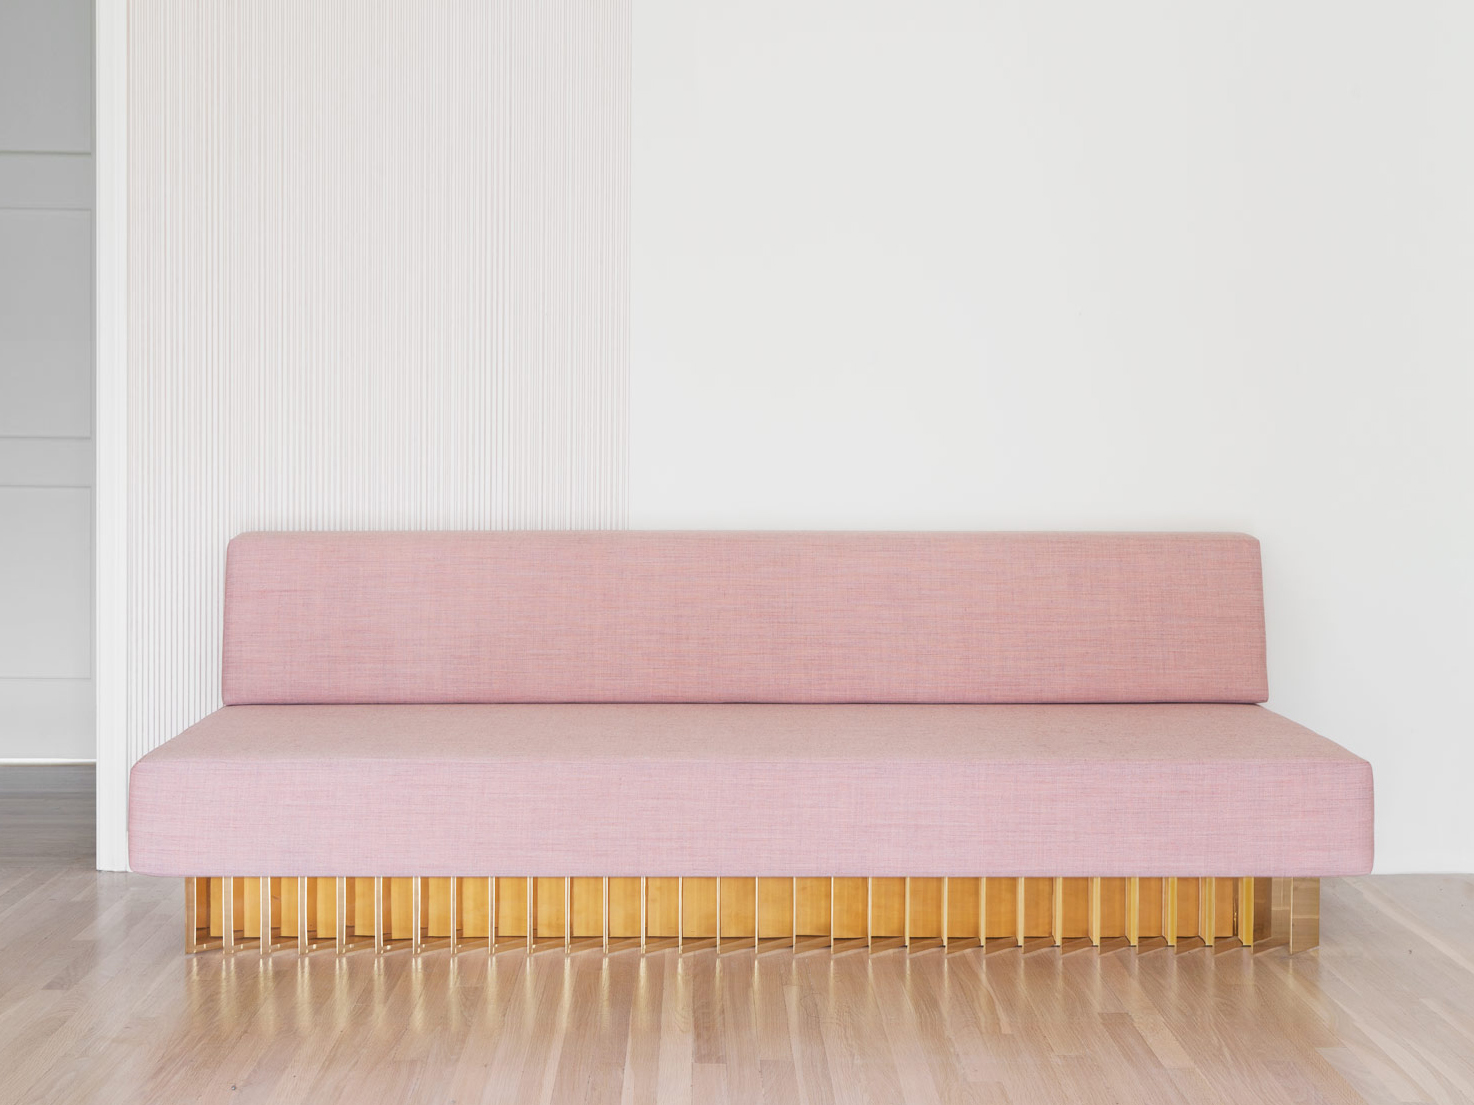 Angled Bar Daybed | pink canvas and solid brass